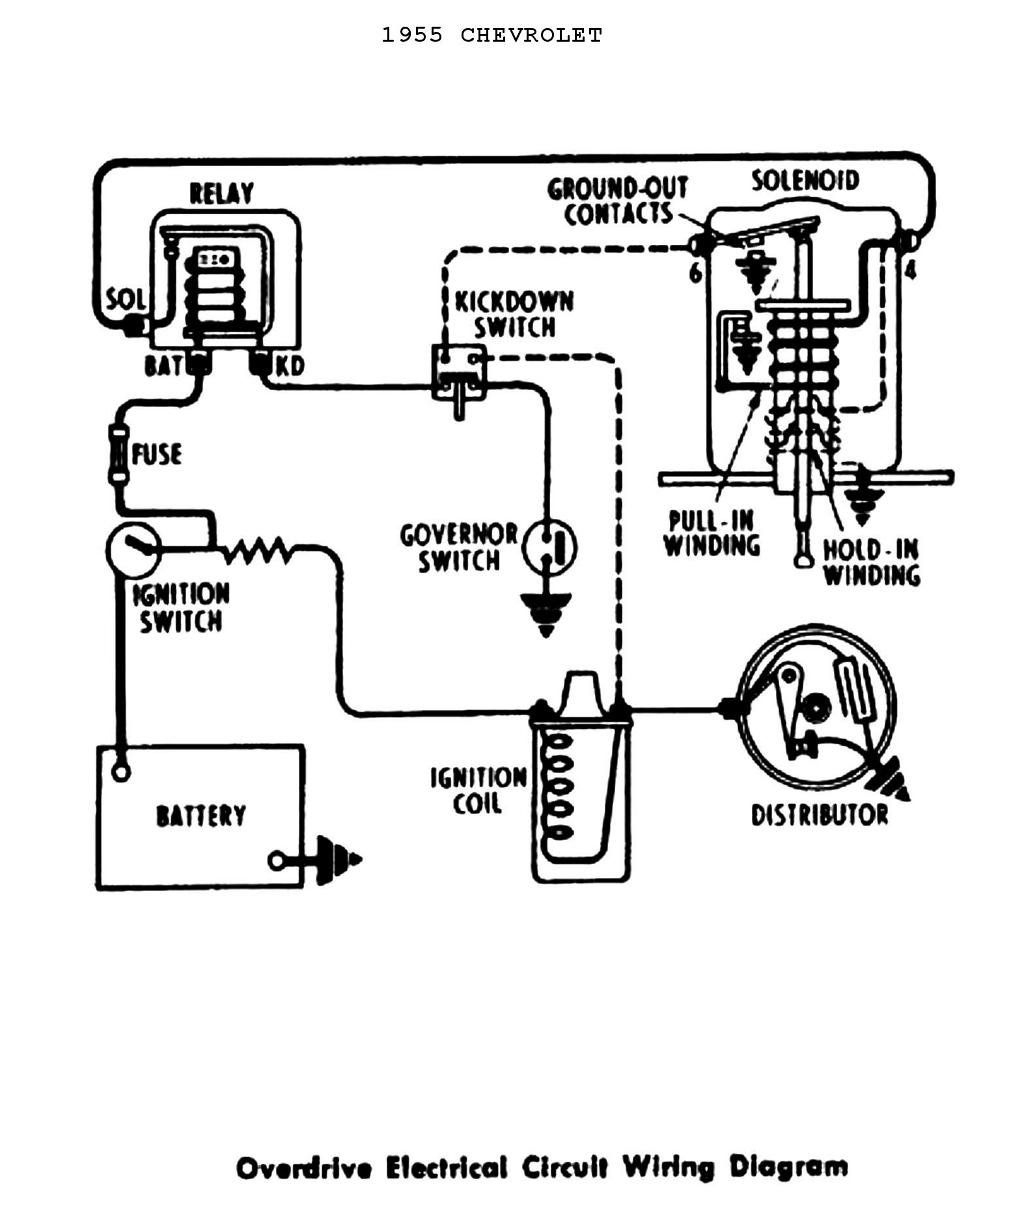 Chevy Ignition Coil Wiring Diagram Download | Wiring Diagram With - Chevy Ignition Coil Wiring Diagram